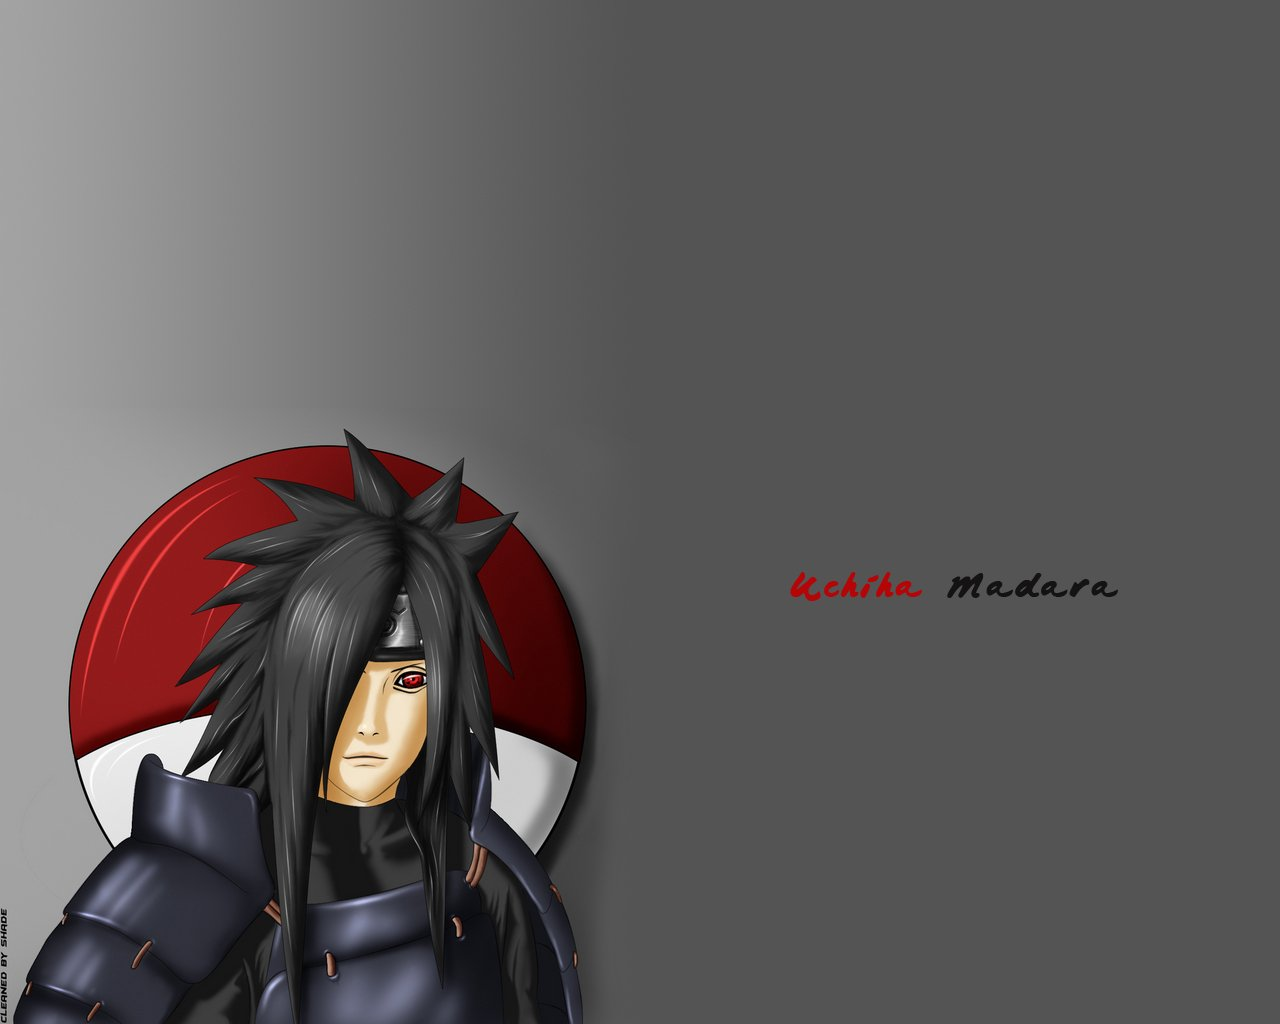 Uchiha Madara wallpaper 1280x1024